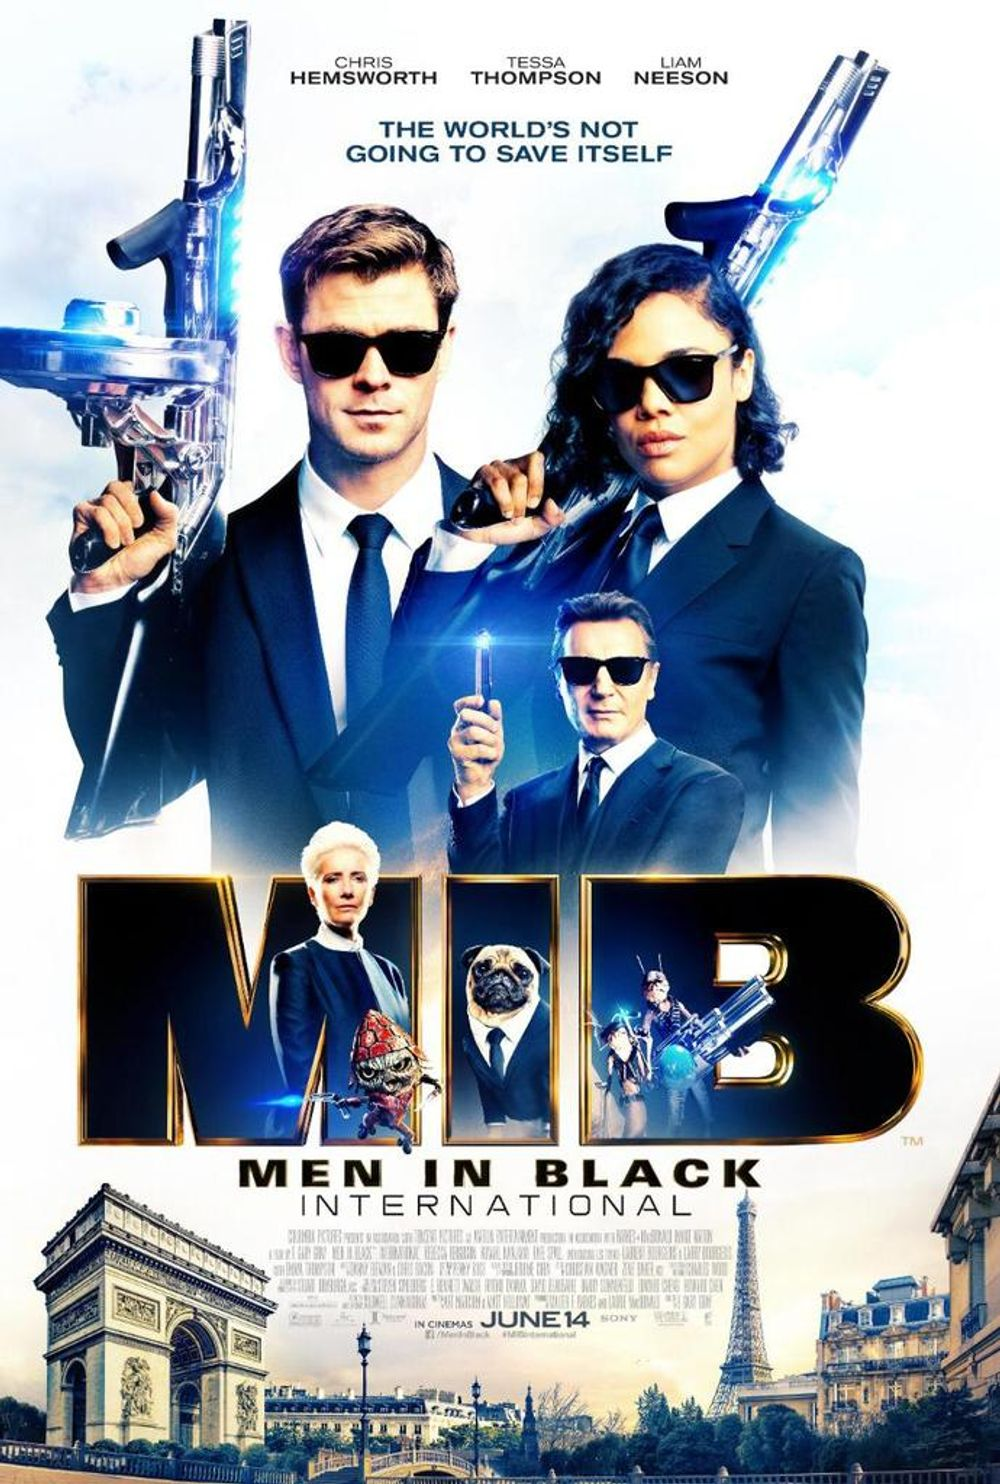 4-Men in Black International